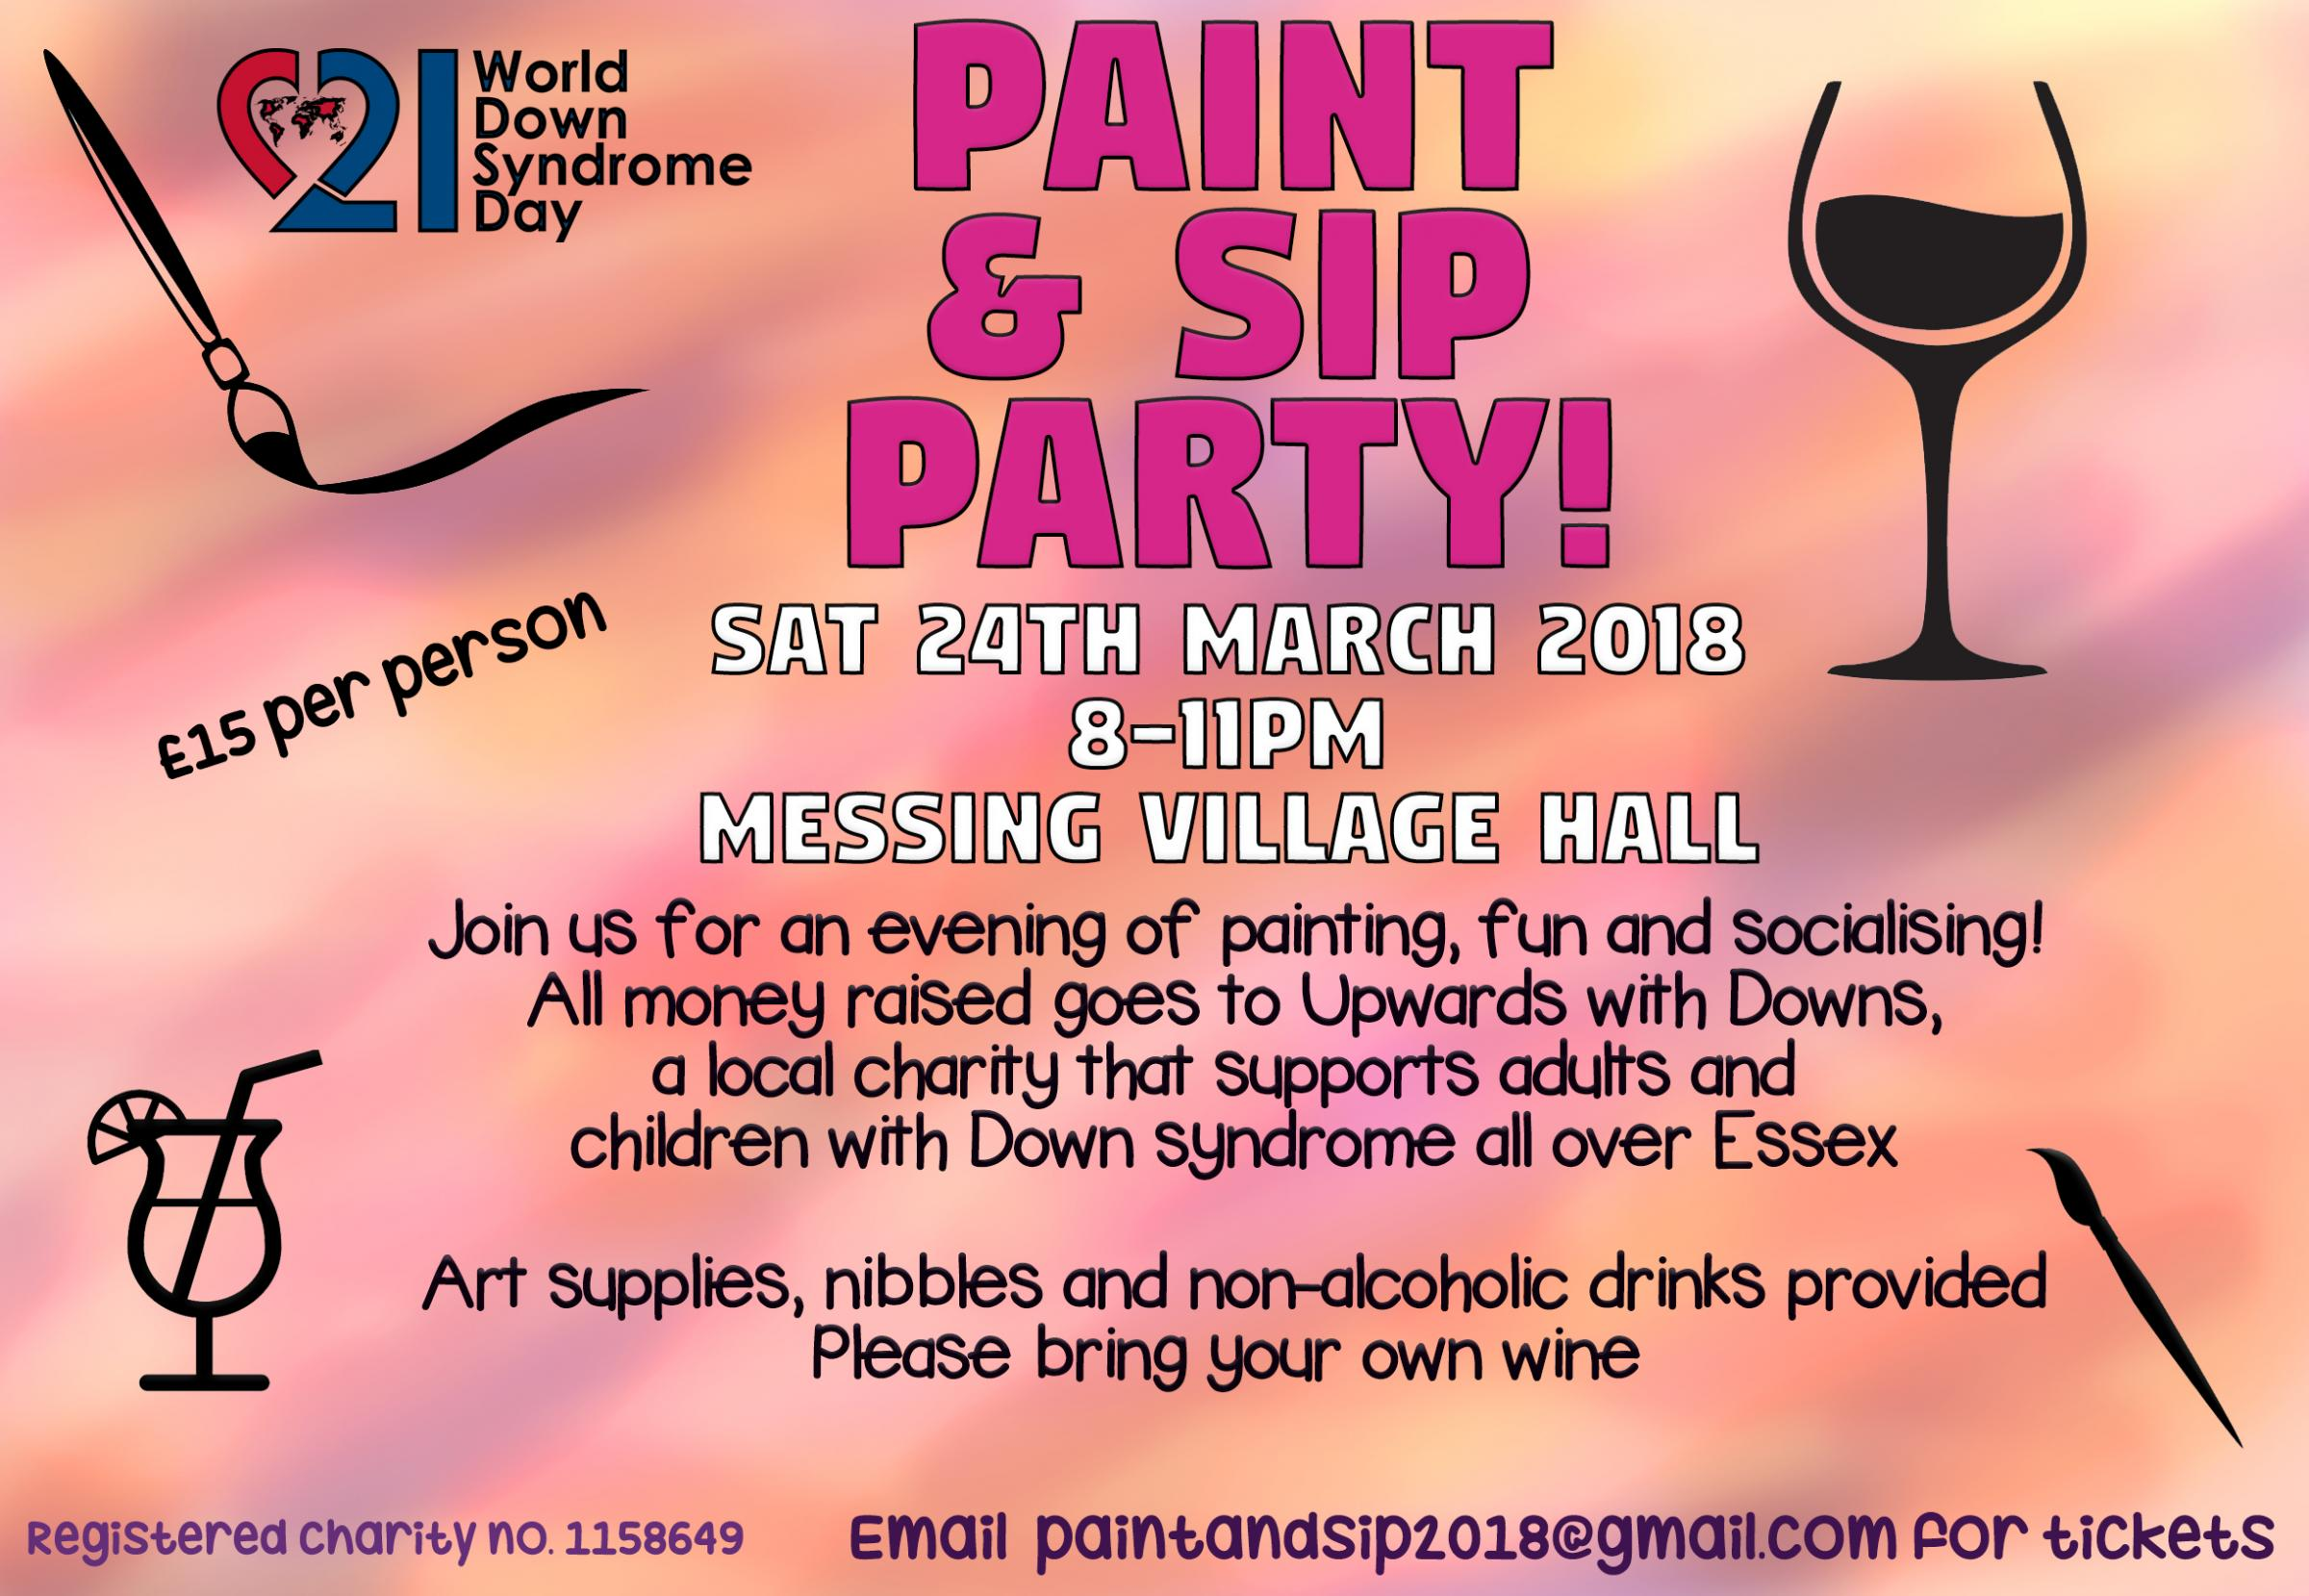 Paint and Sip Party! World Down Syndrome Day Fundraiser